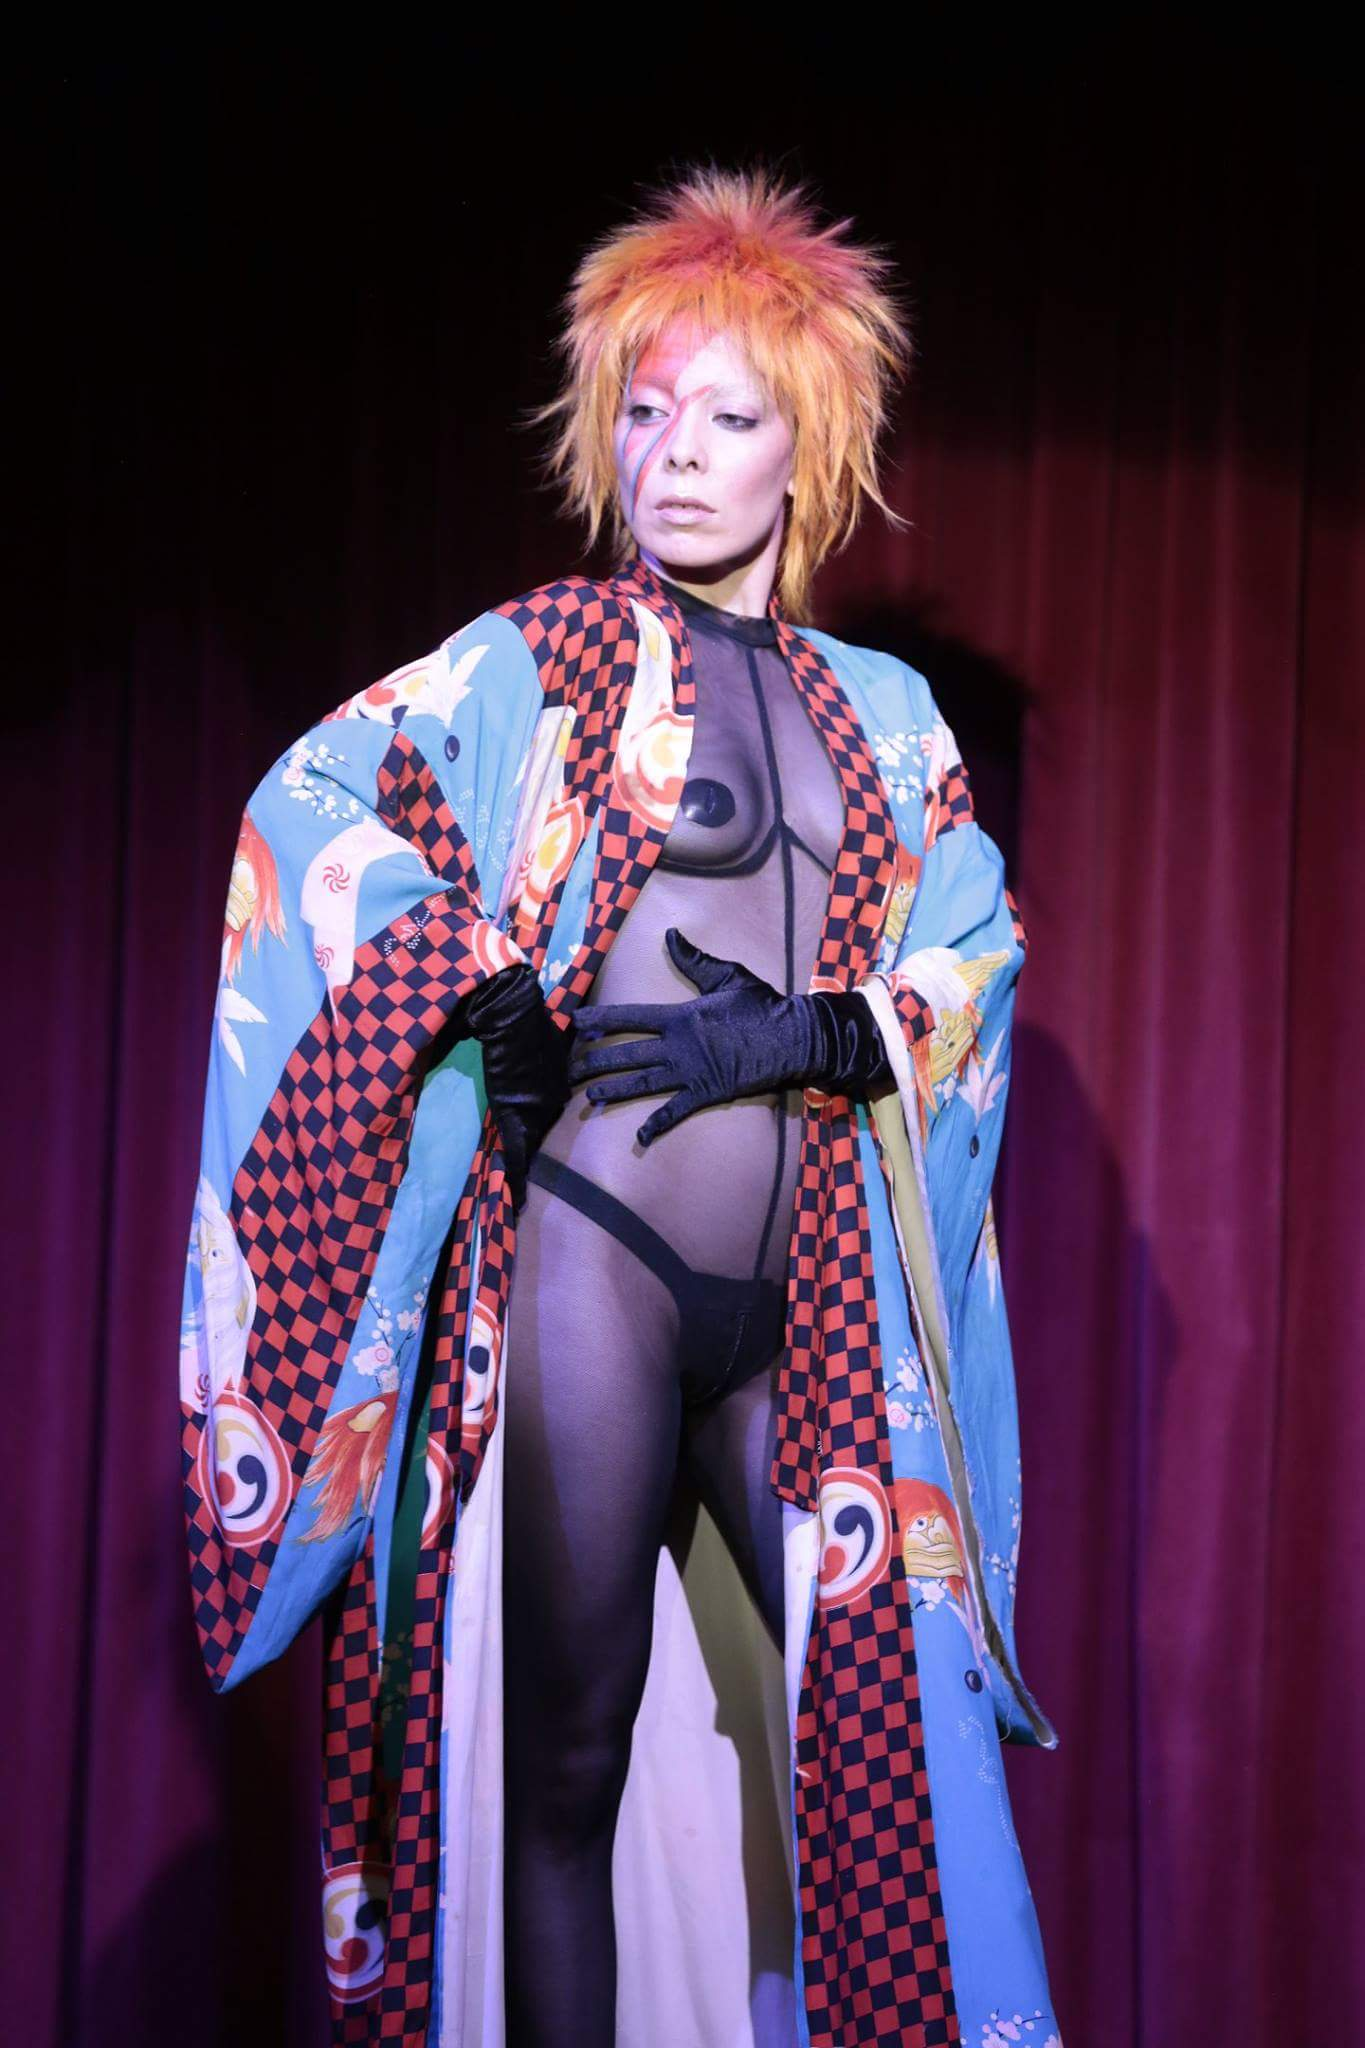 Diamondback performing her Aladdin Sane act at the Brookledge Theater. Photo by Mark Berry (@mondovisions)